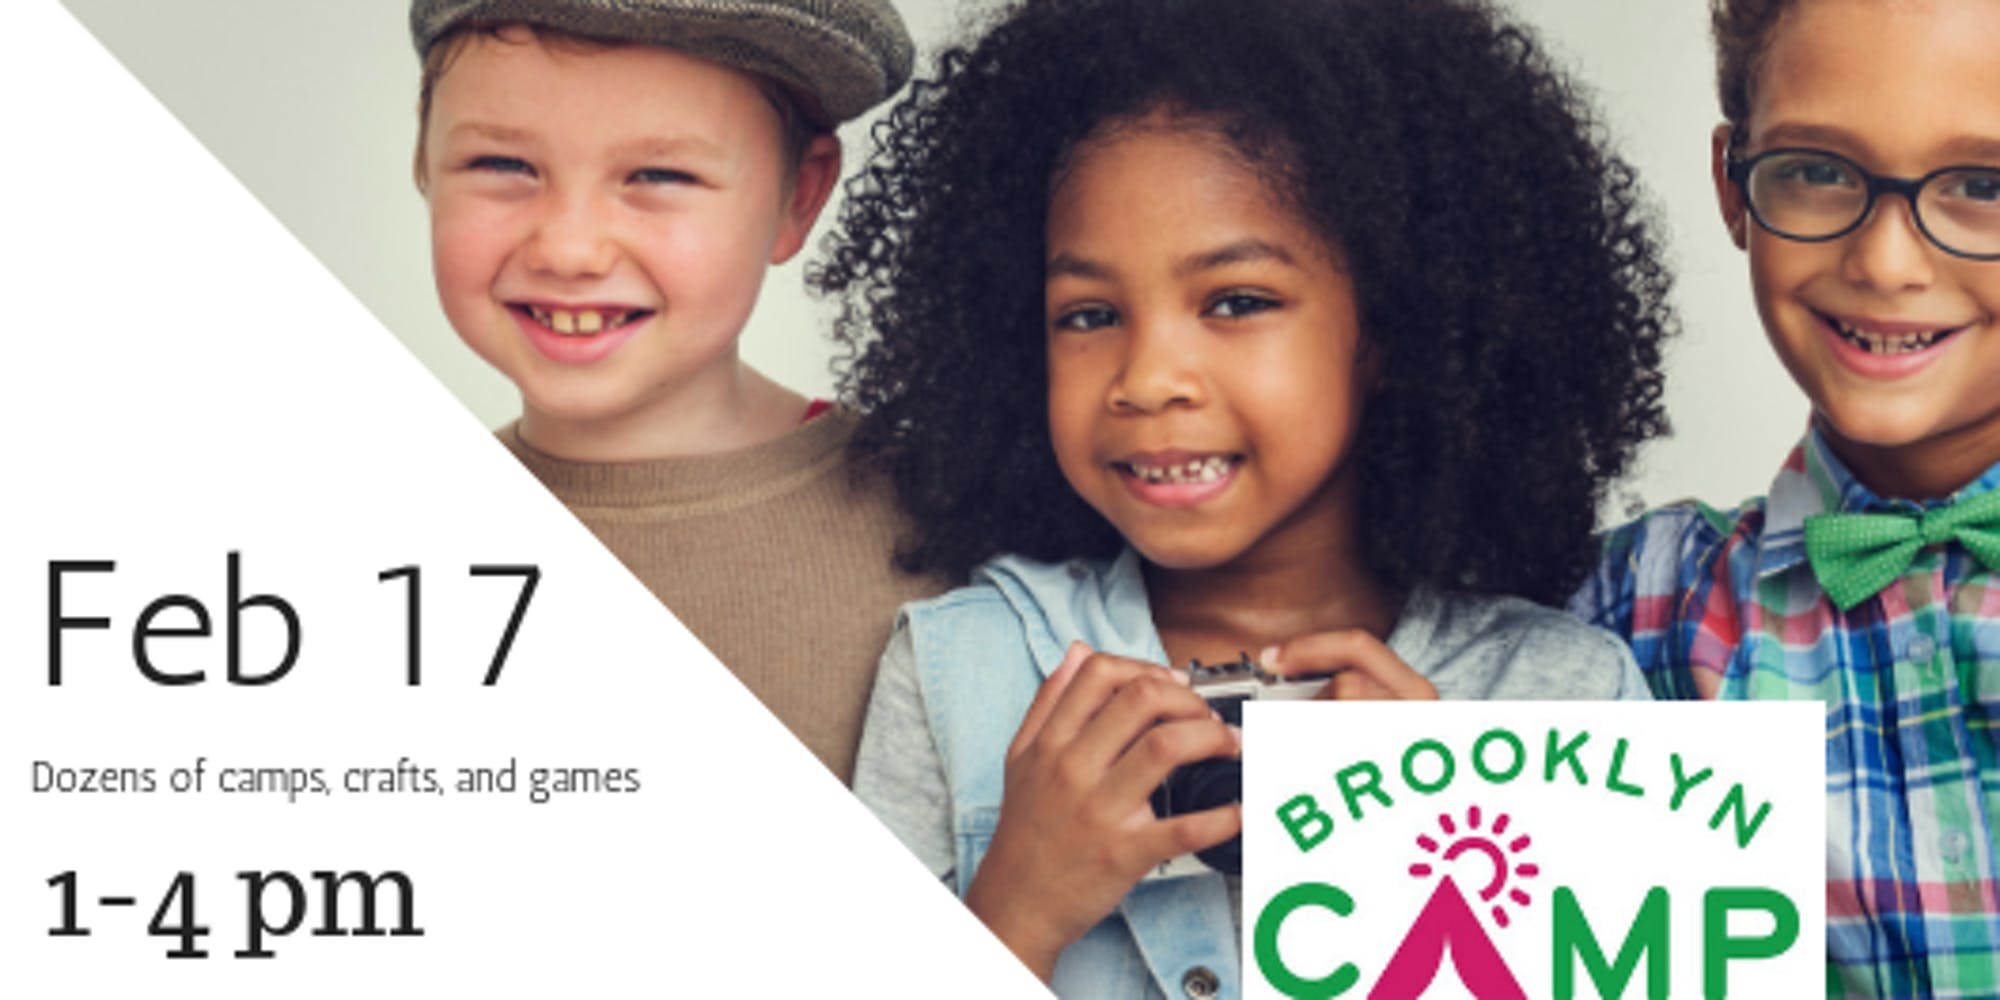 2019 Brooklyn Camp Expo A Child Grows